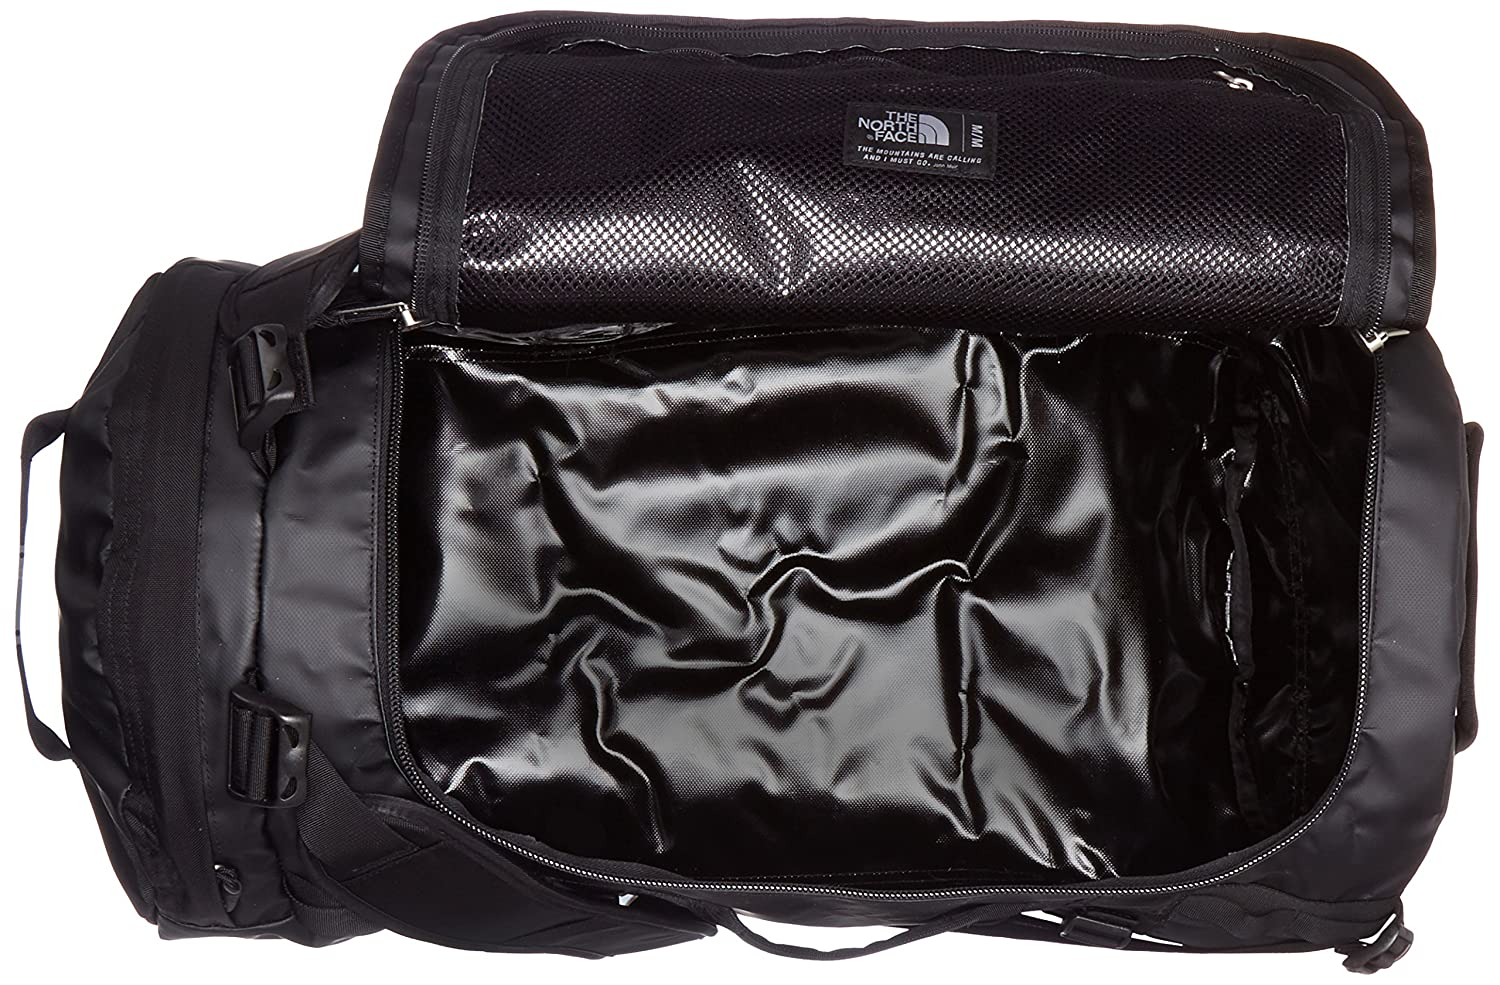 c535314c53 Amazon.com: The North Face Base Camp Duffel-Medium, TNF Black, : Clothing